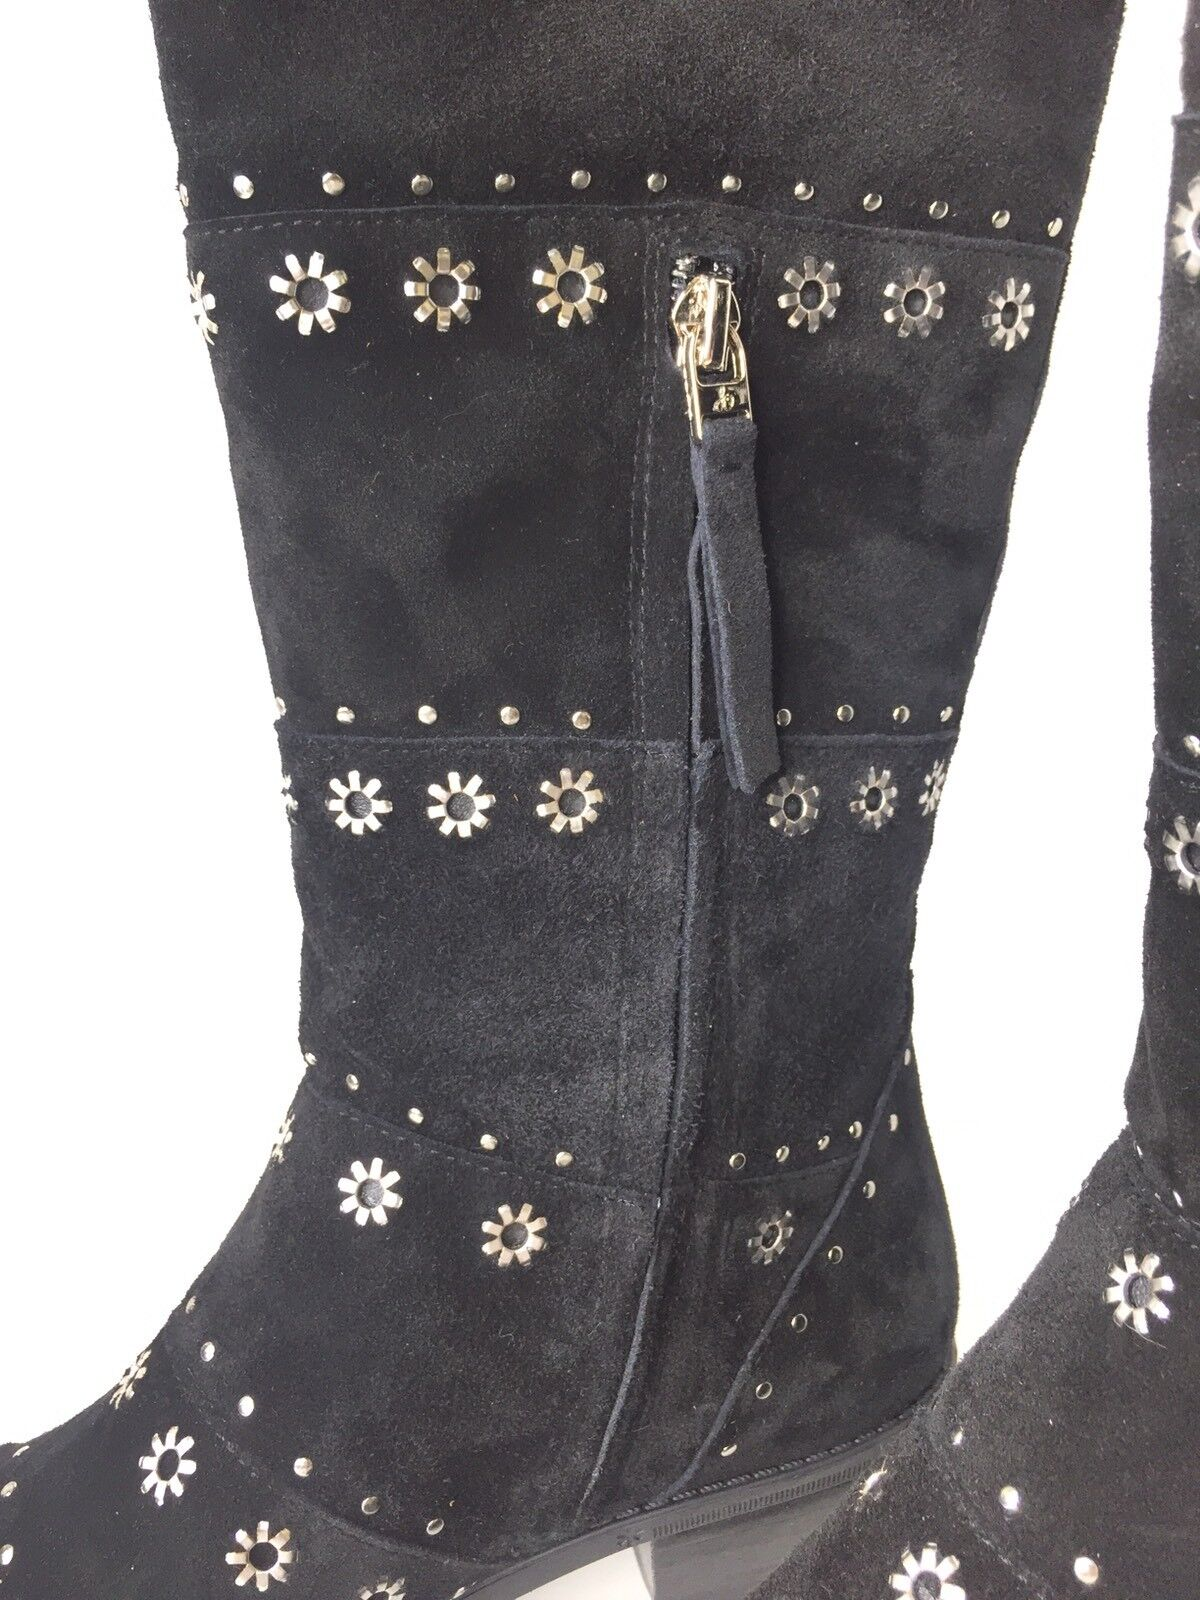 Sam Edelman Edelman Edelman Chandler Suede Leather Black Boots Studded Tall High Riding Size 6 df7bfa